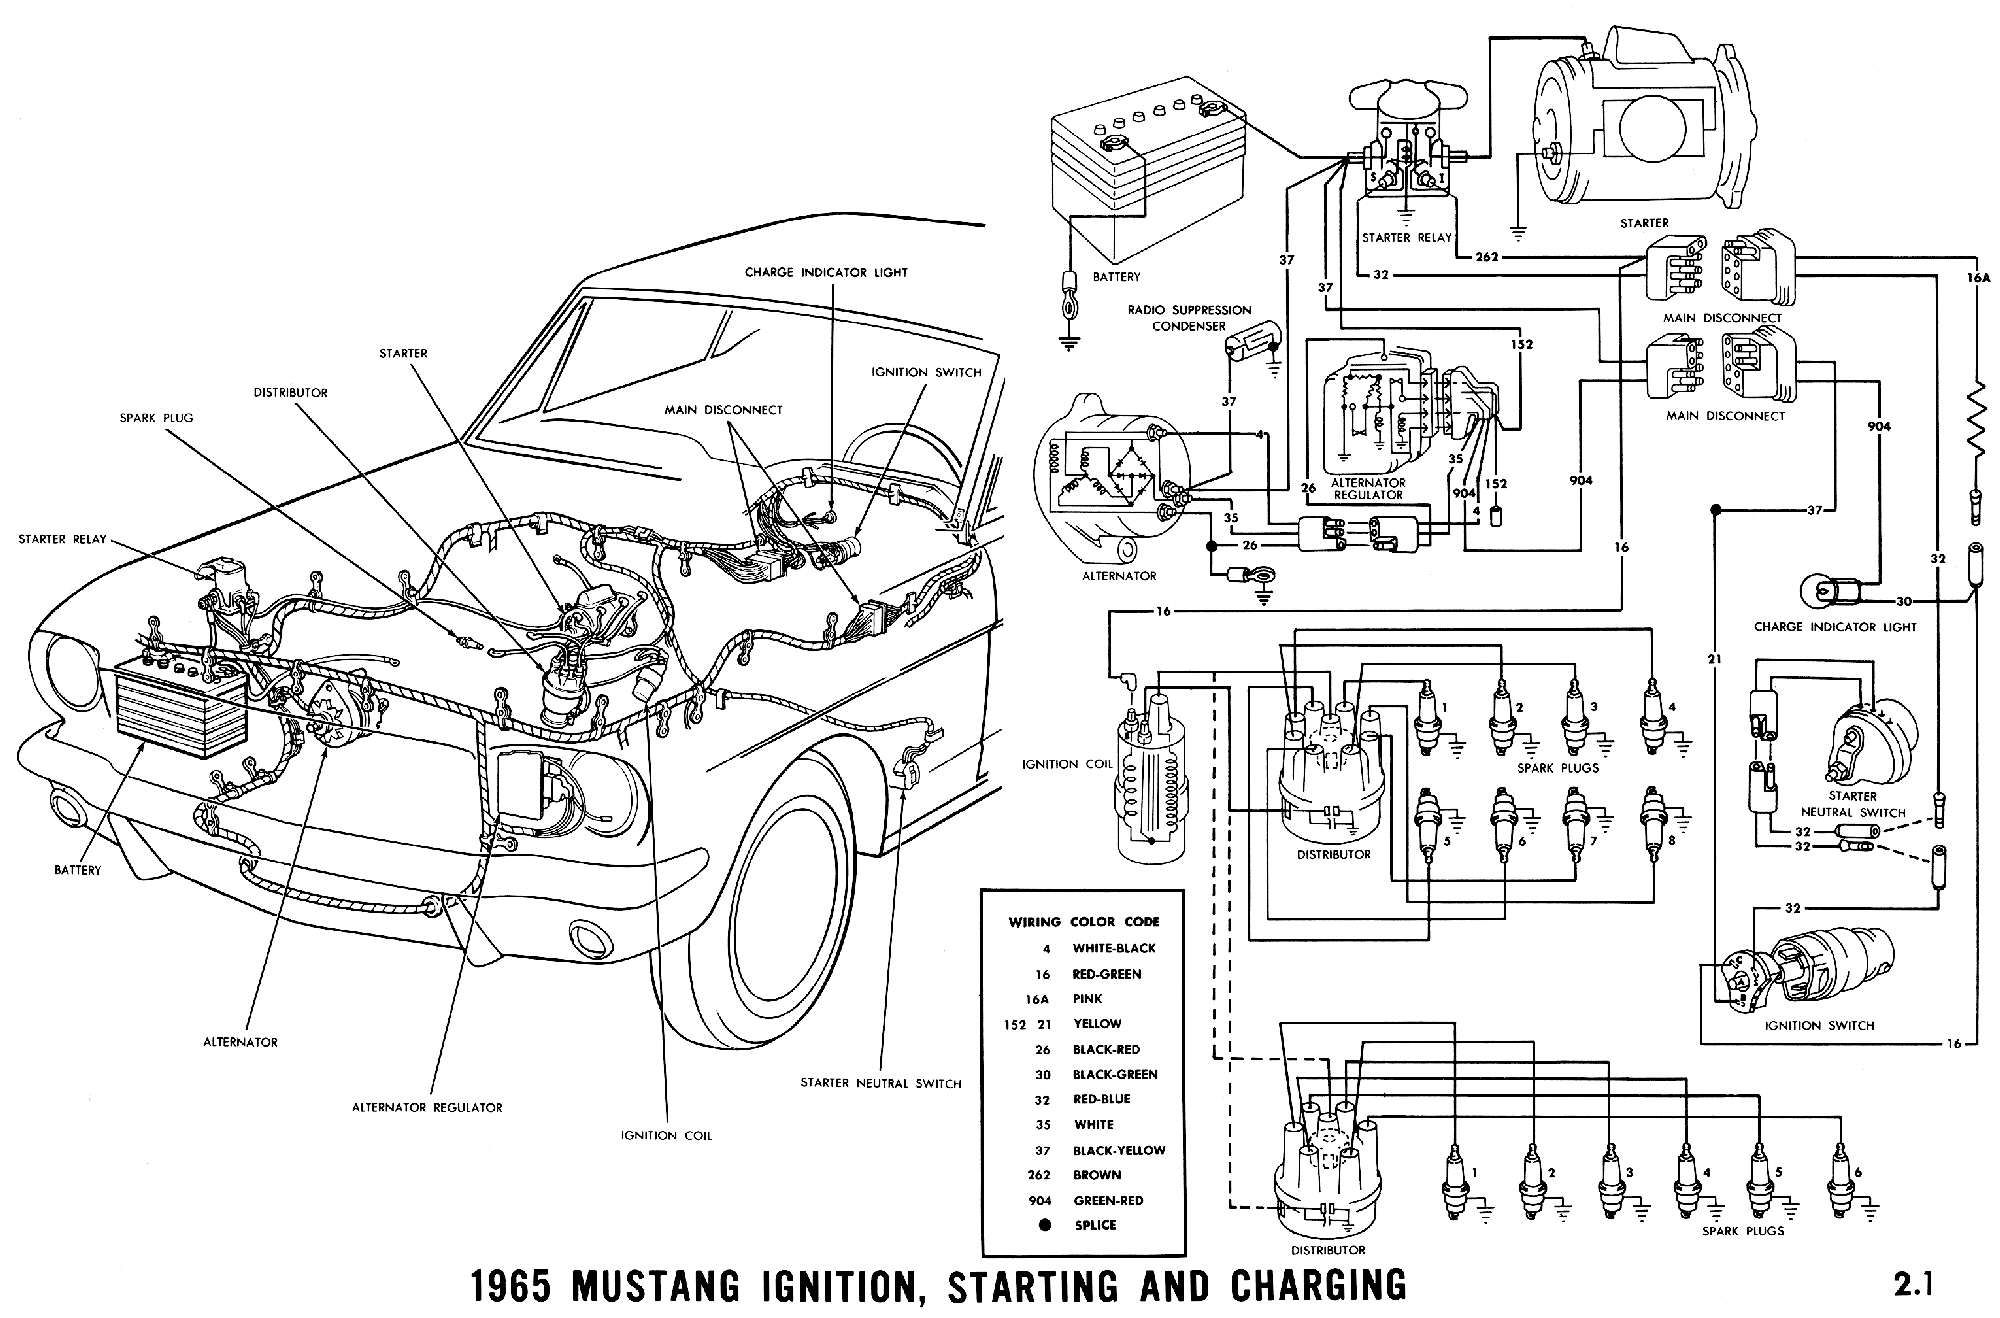 455567318534783012 on chevy truck radio wiring diagram